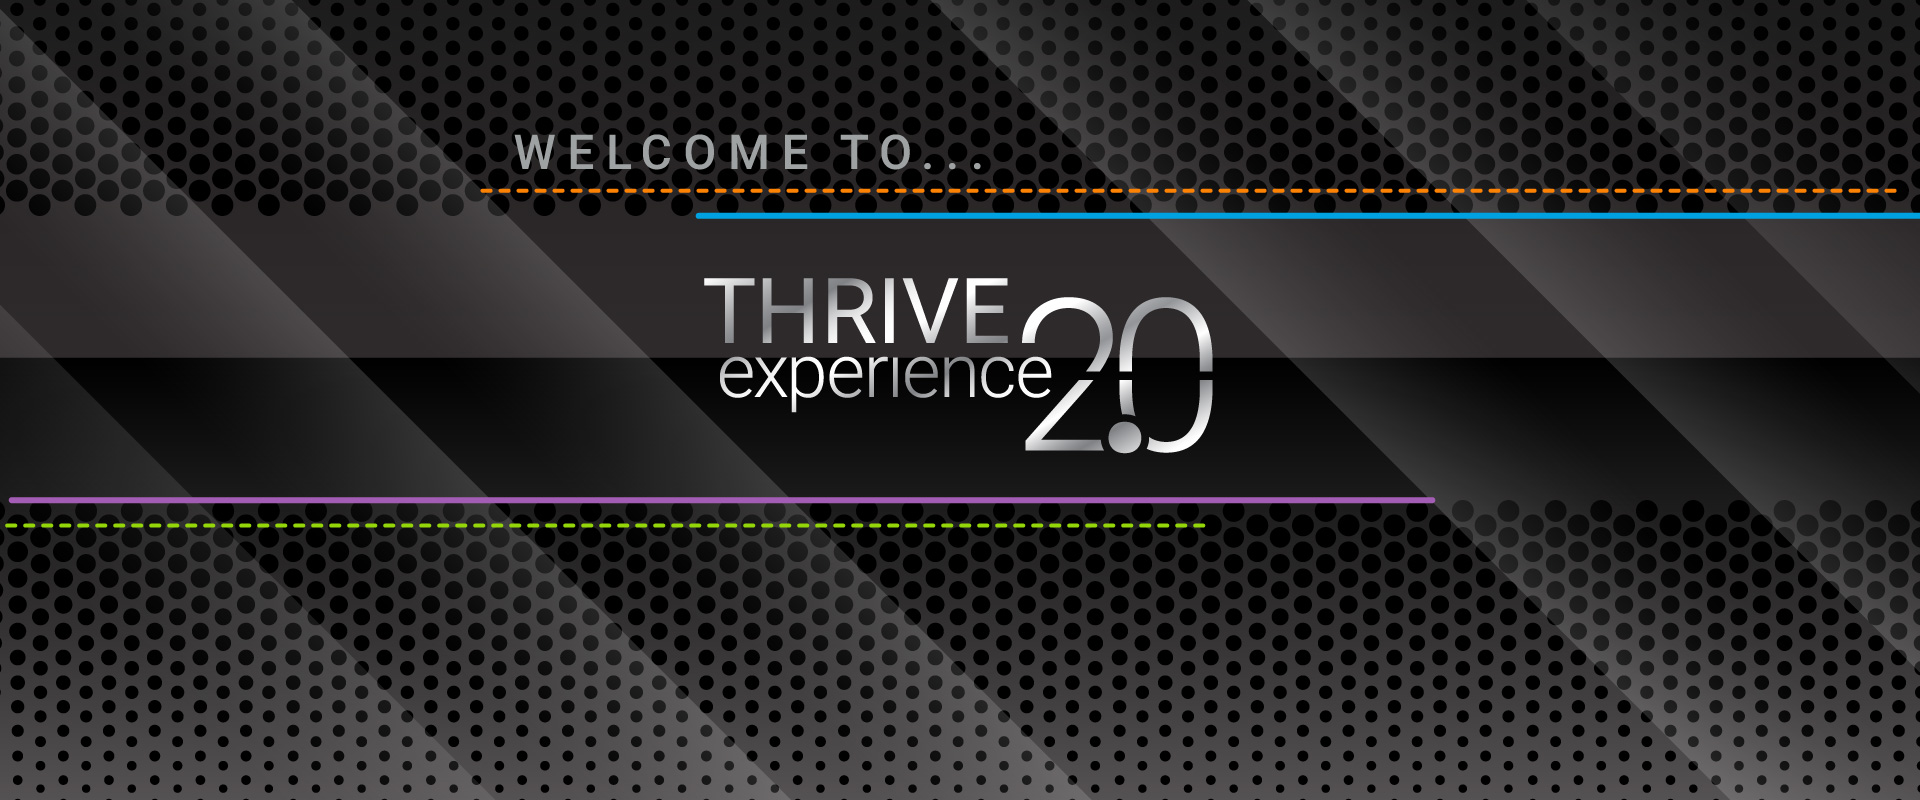 Welcome to THRIVE Experience 2.0